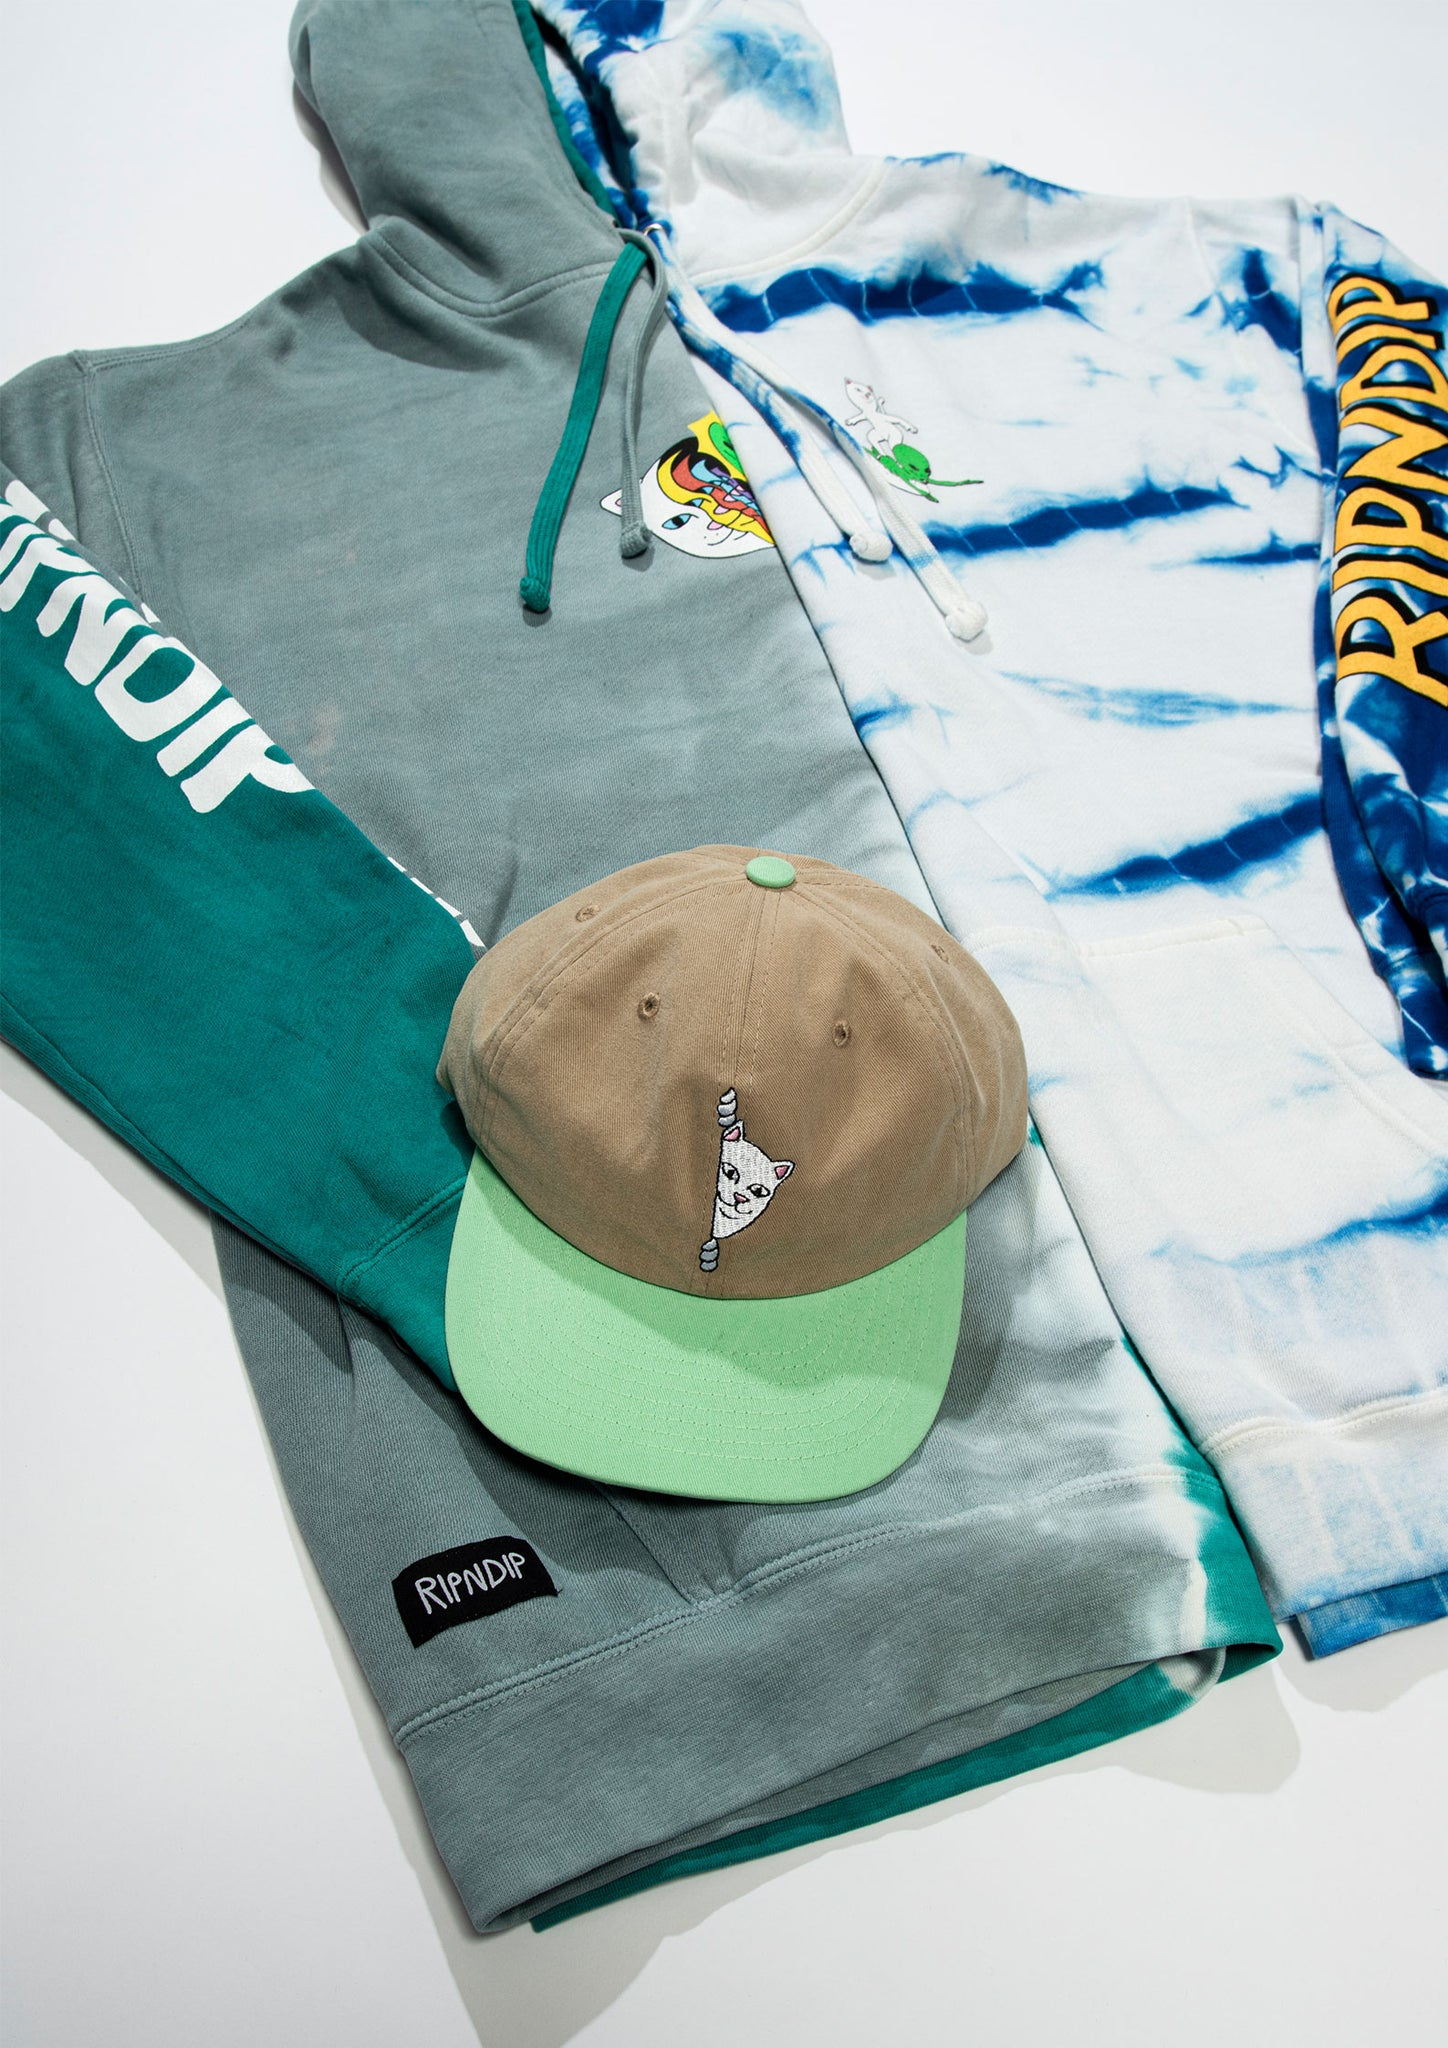 RIPNDIP FW20 Tie-dye hoodie, regular grey graphic hoodie, brown and green snapback